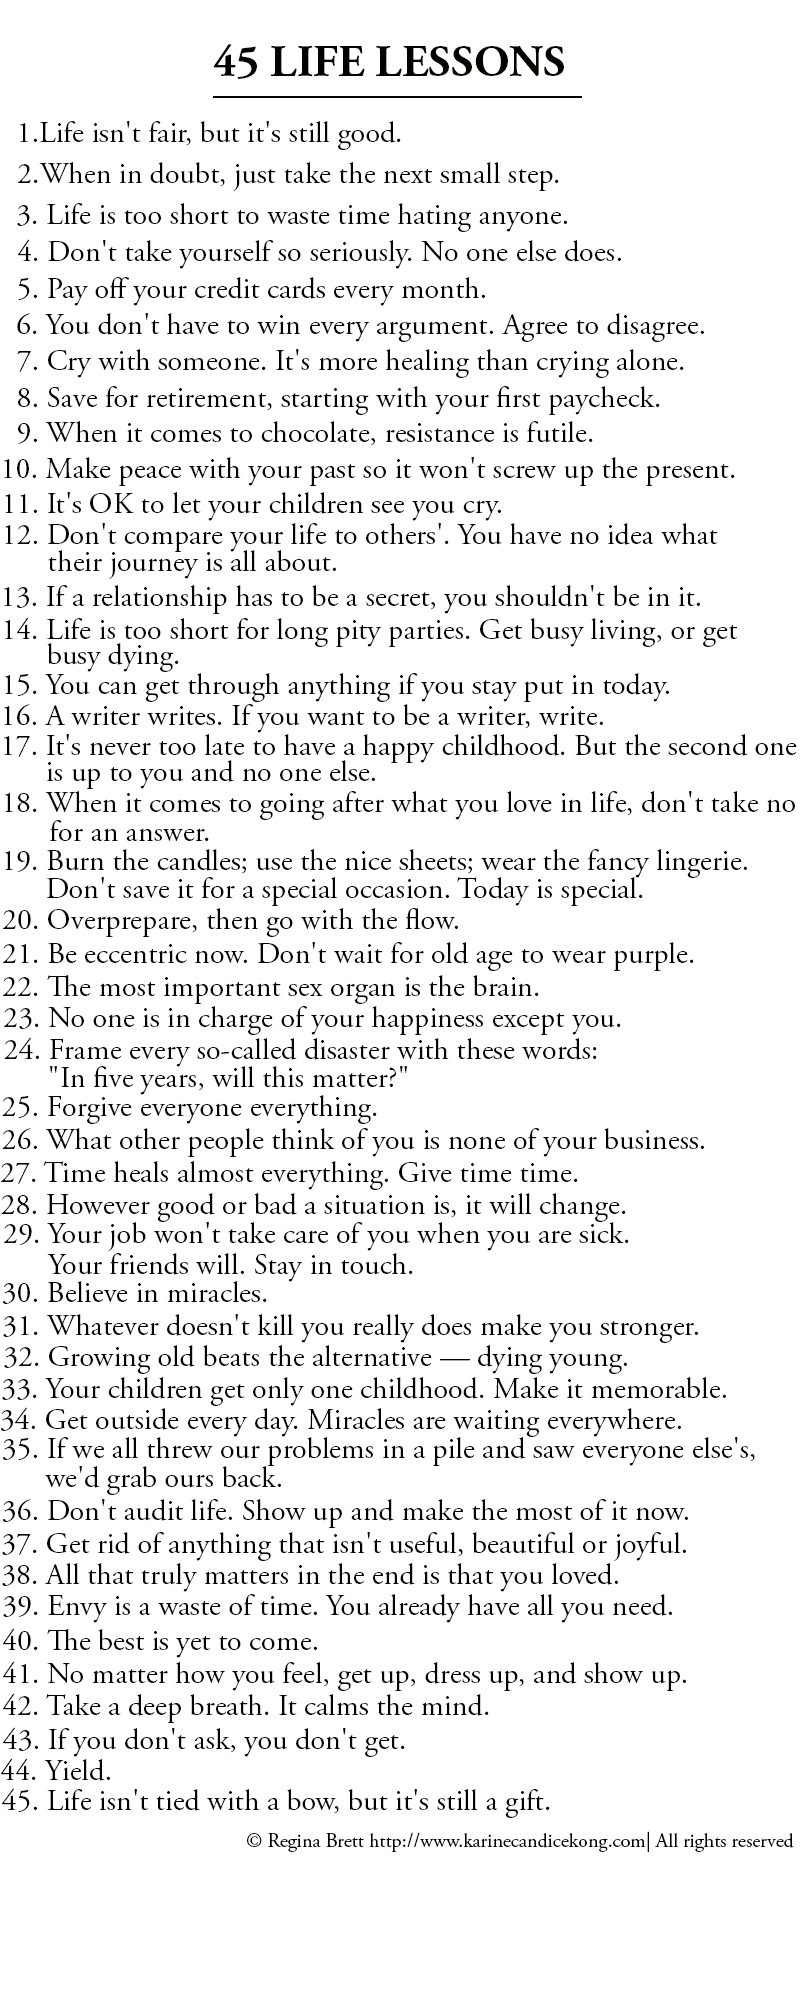 45 LIFE LESSONS. Read on...